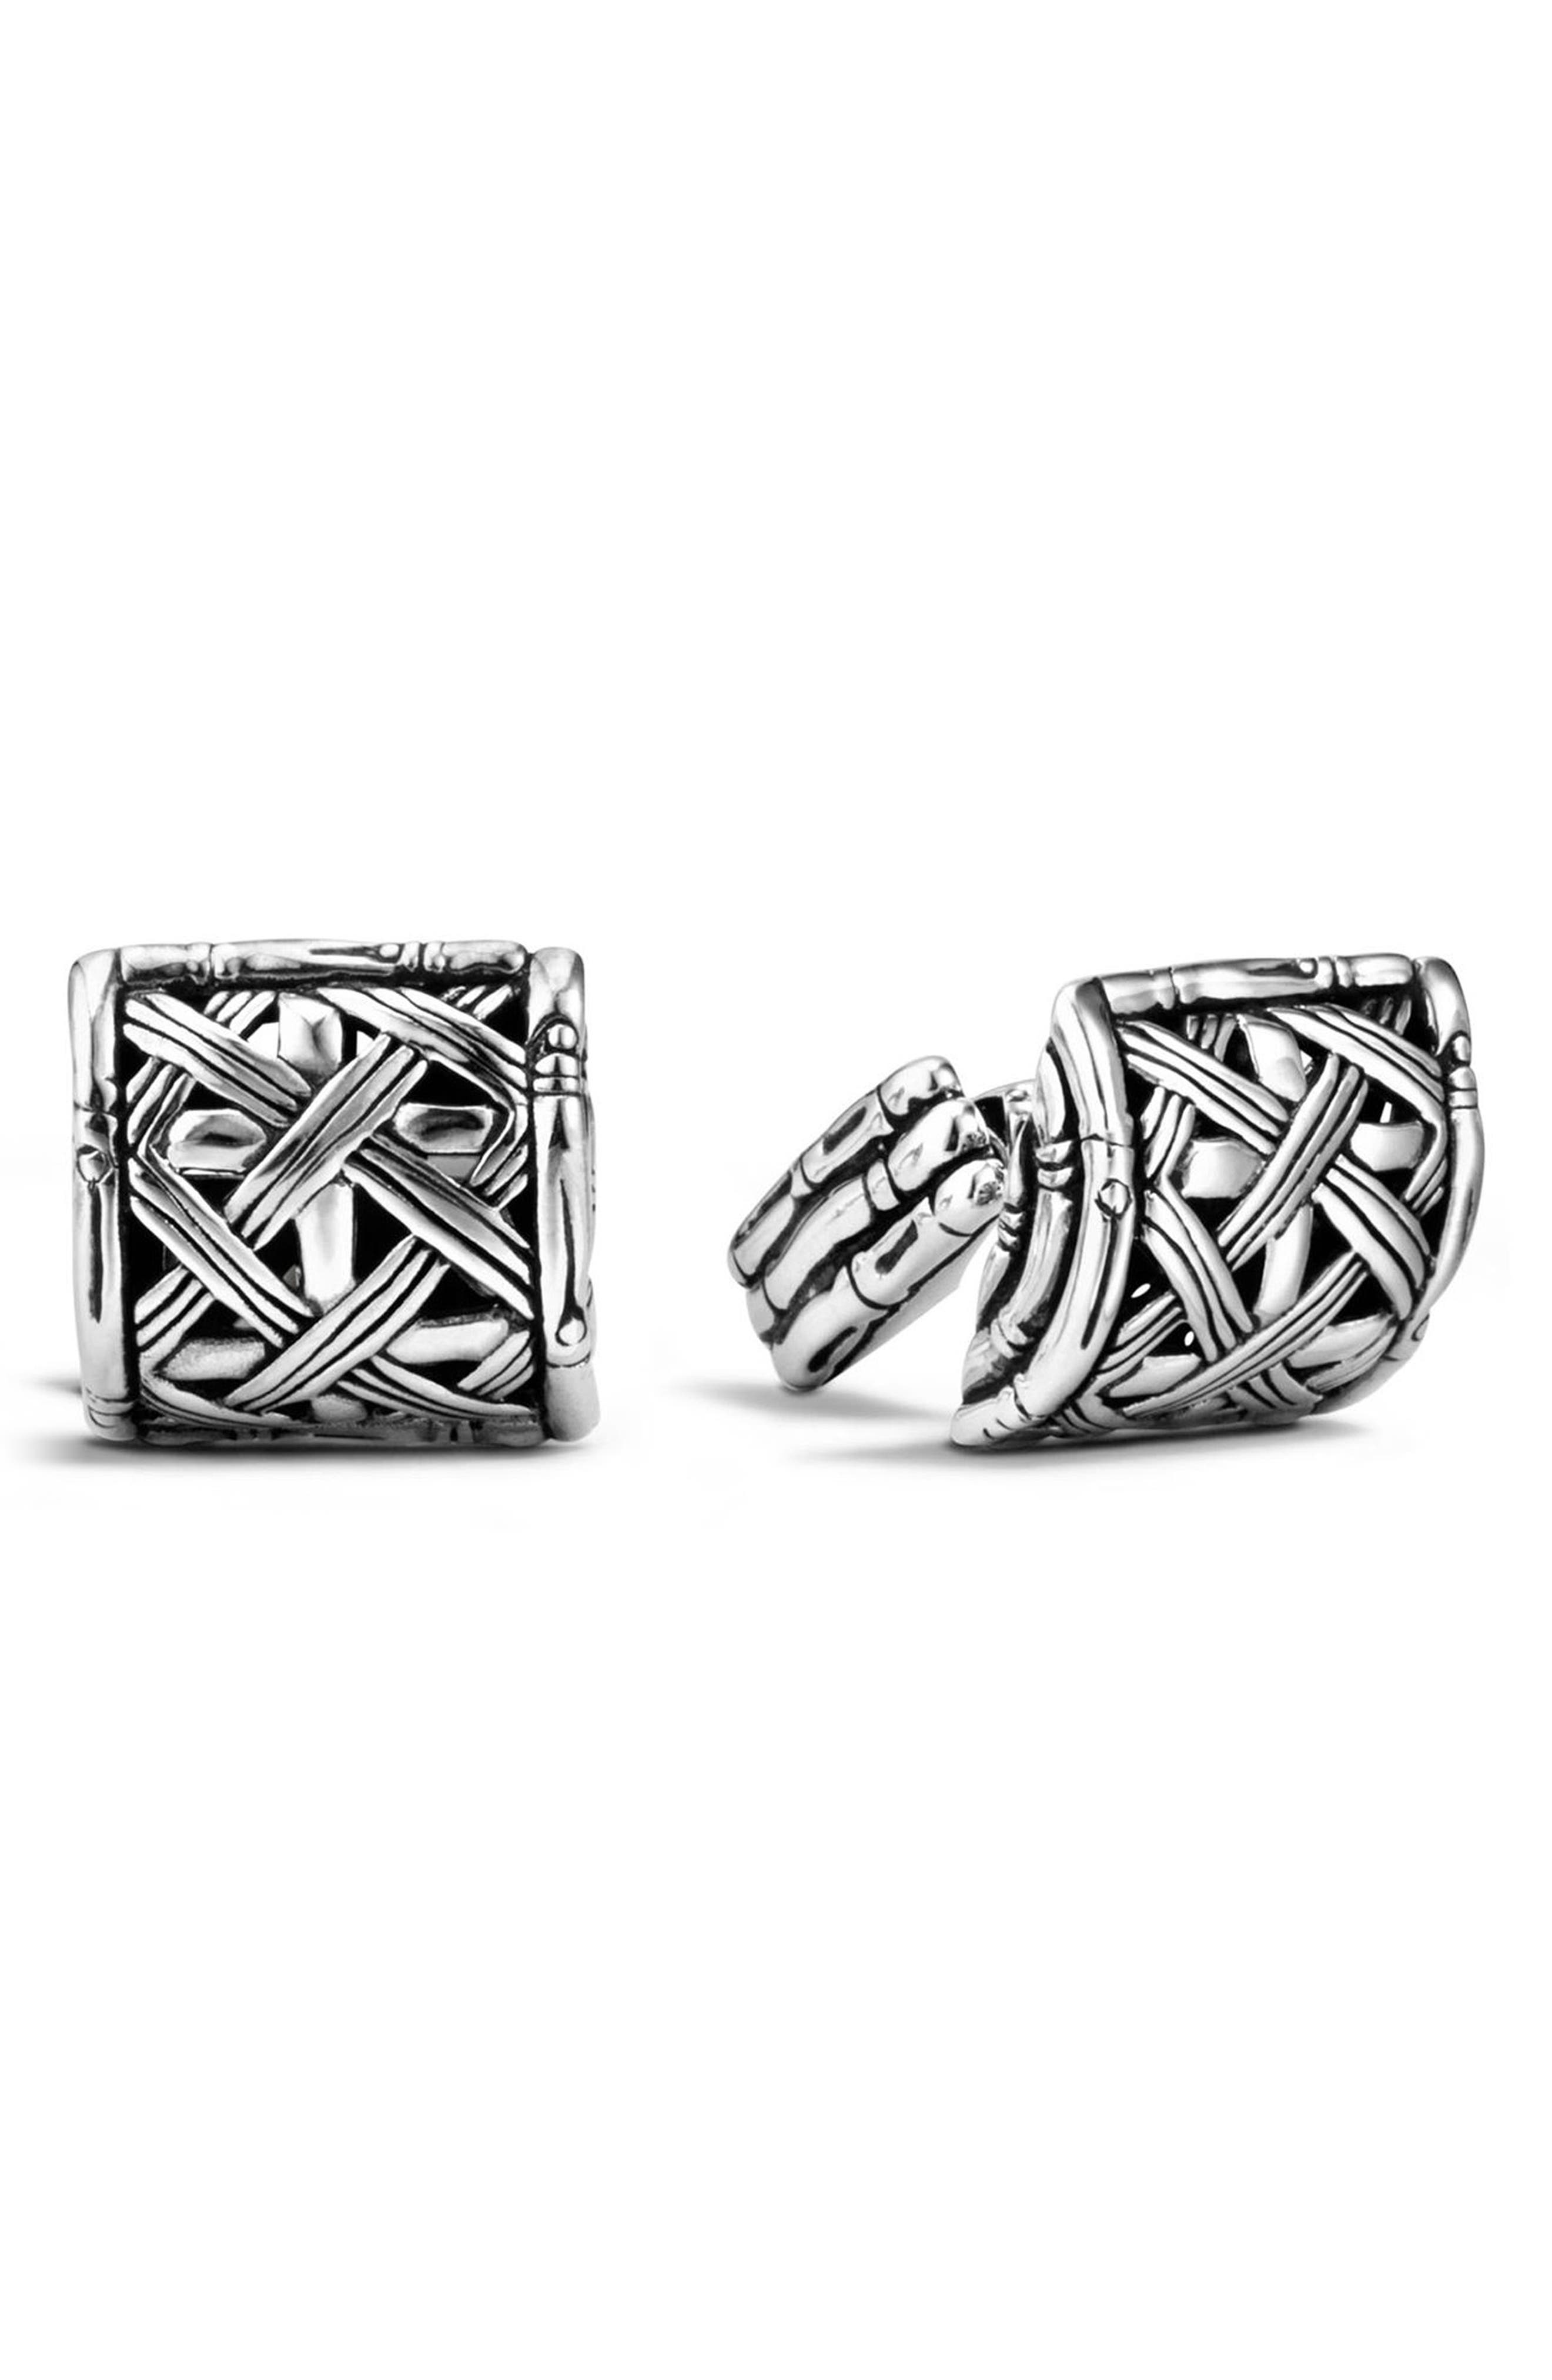 Alternate Image 1 Selected - John Hardy Bamboo Silver Woven Cuff Links